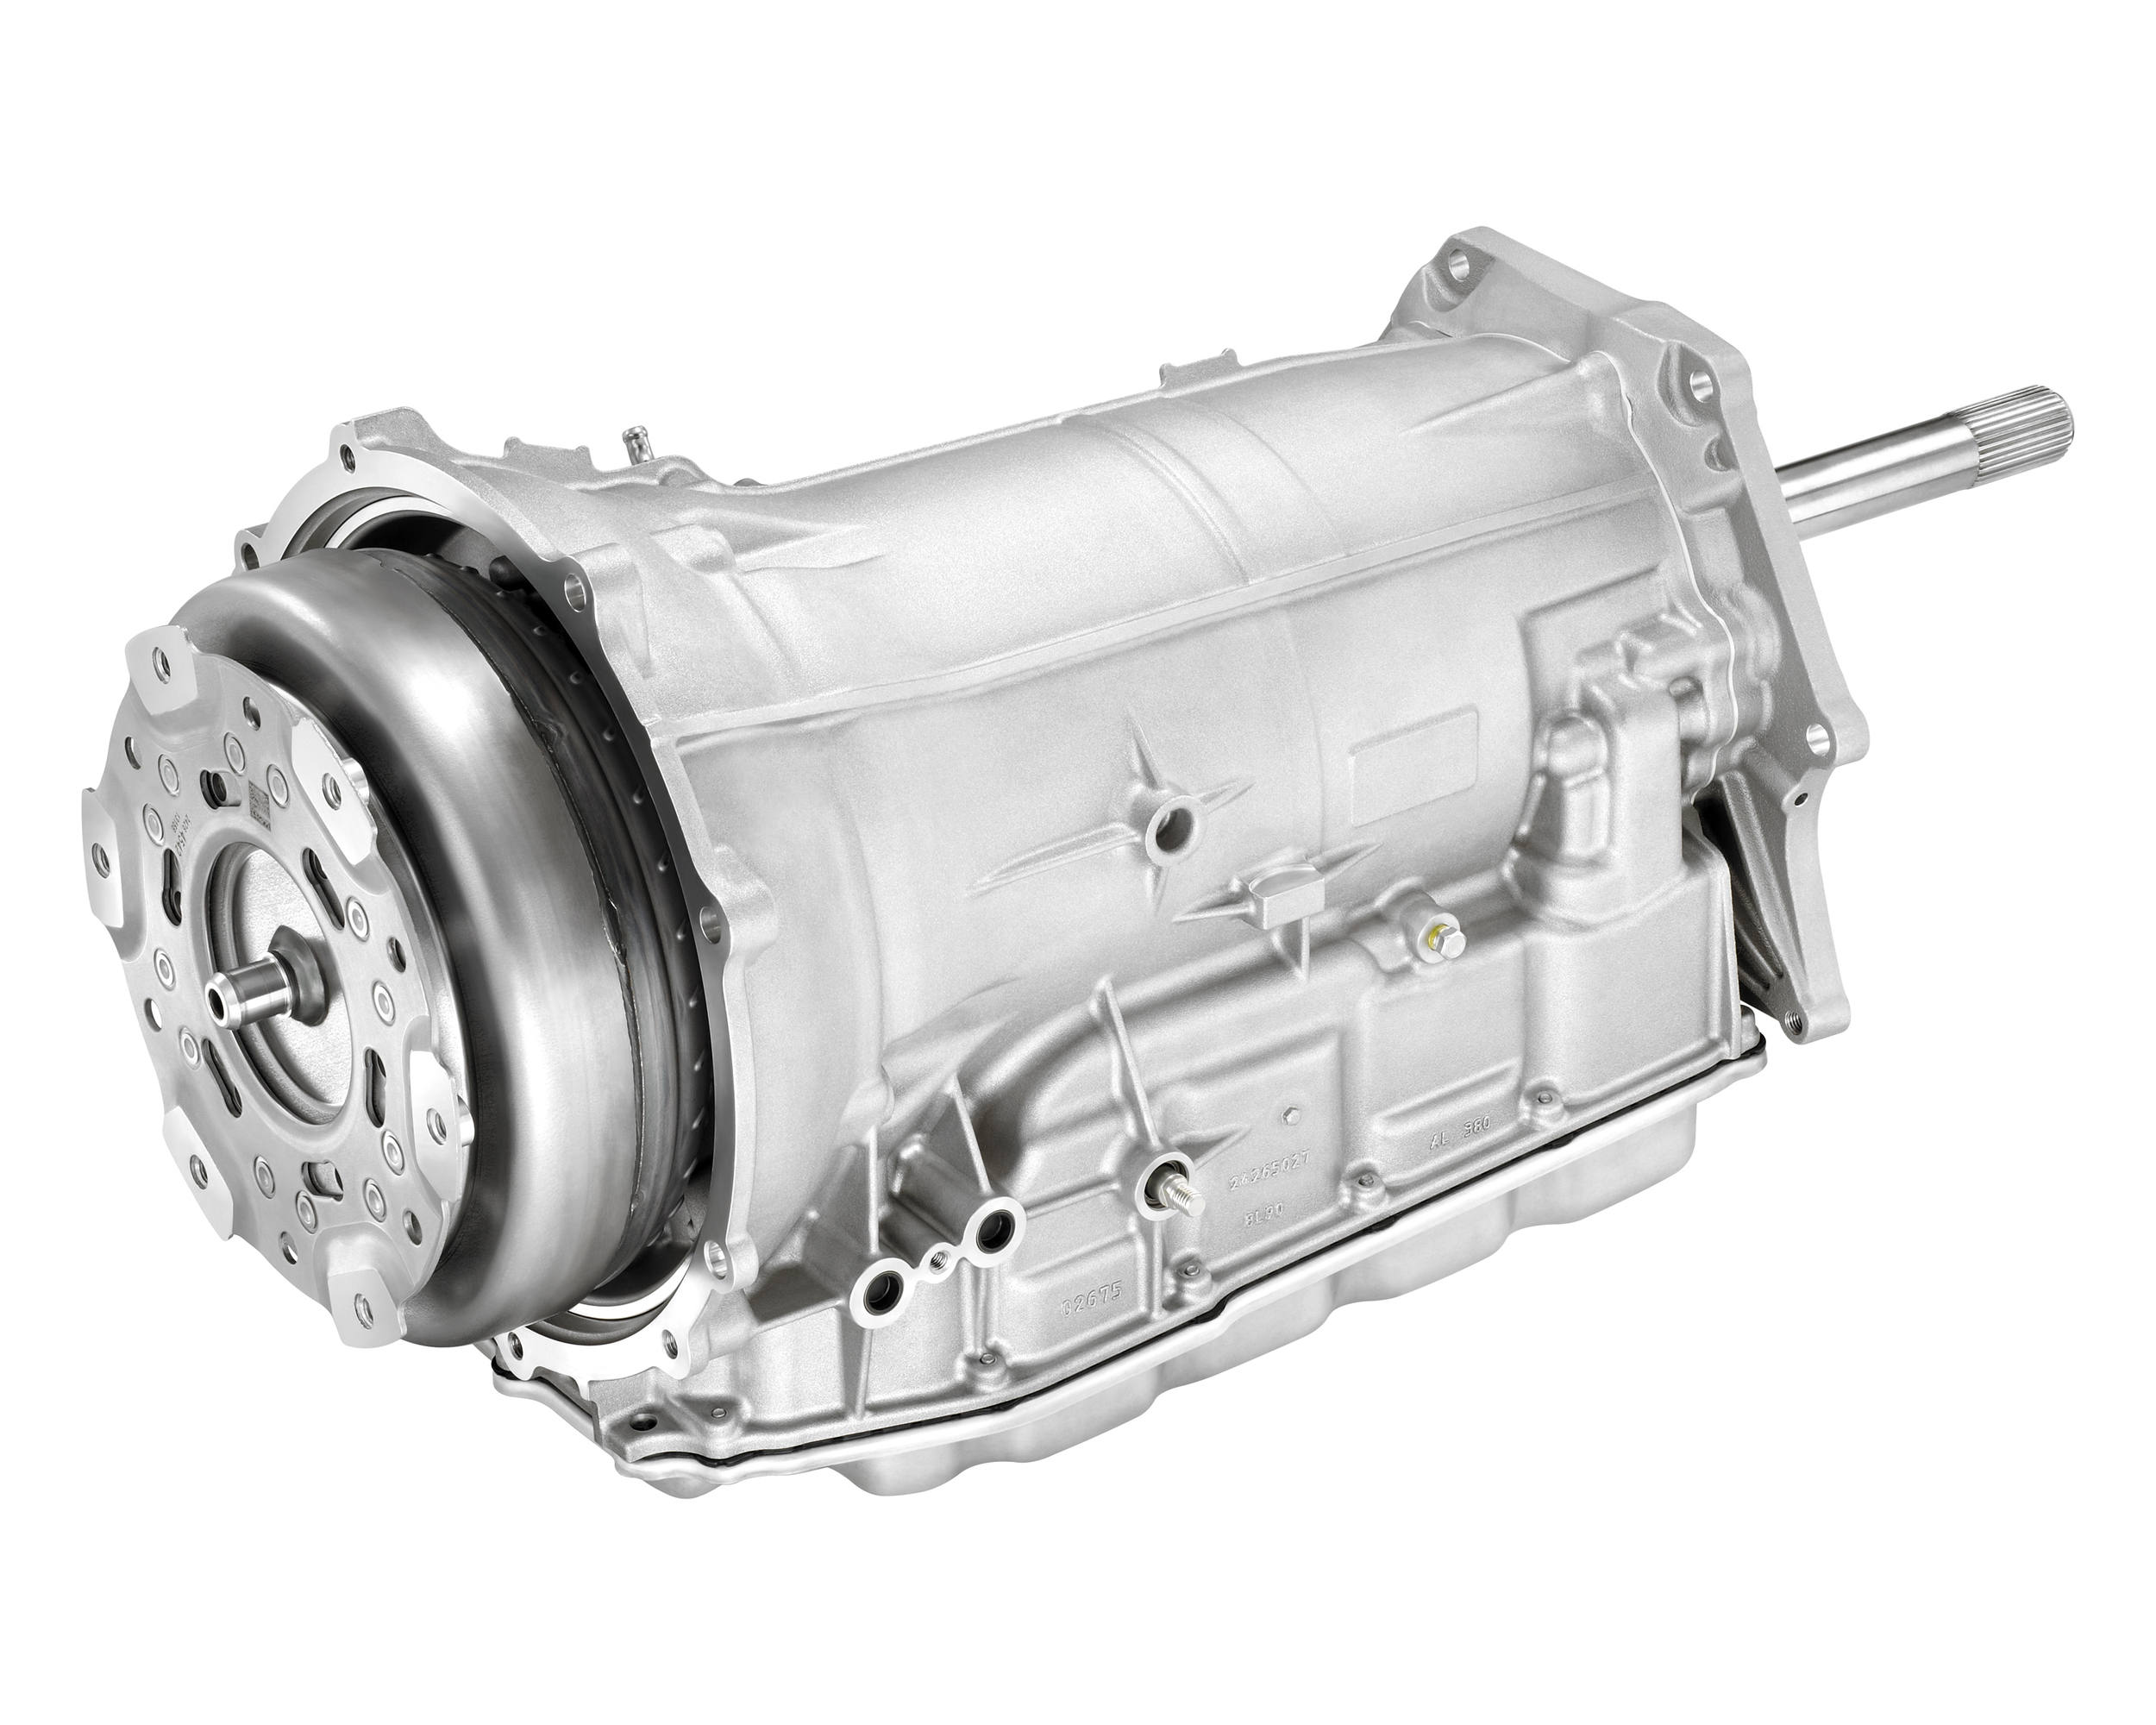 Chevrolet's 8L90 8-speed automatic transmission, developed fully in-house.